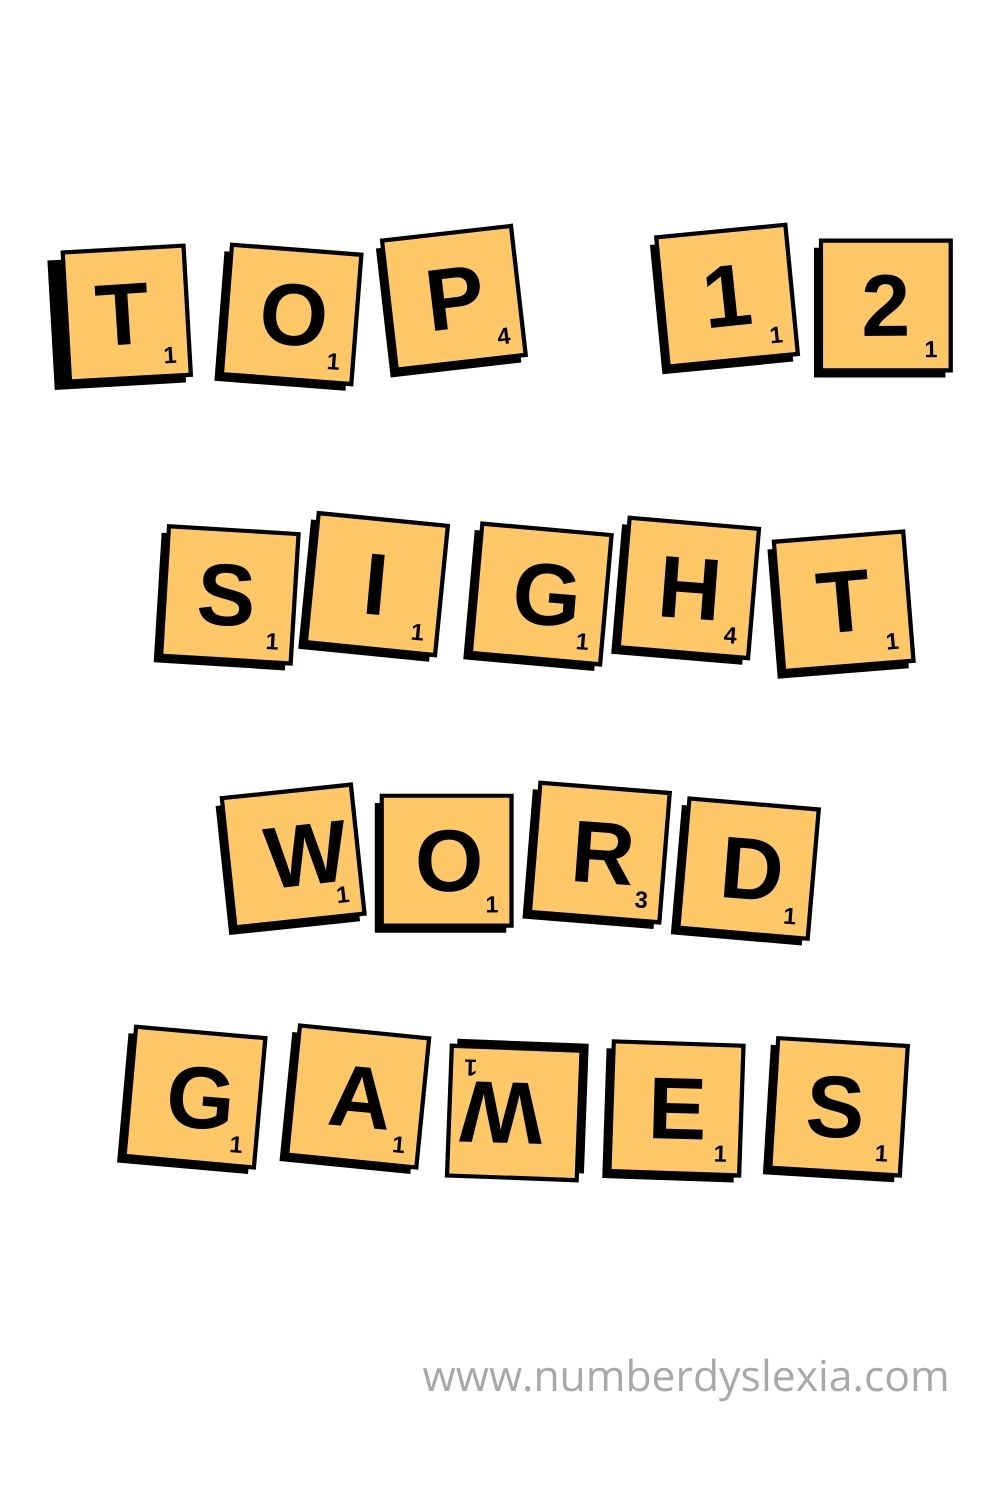 A list of top 12 sight word games